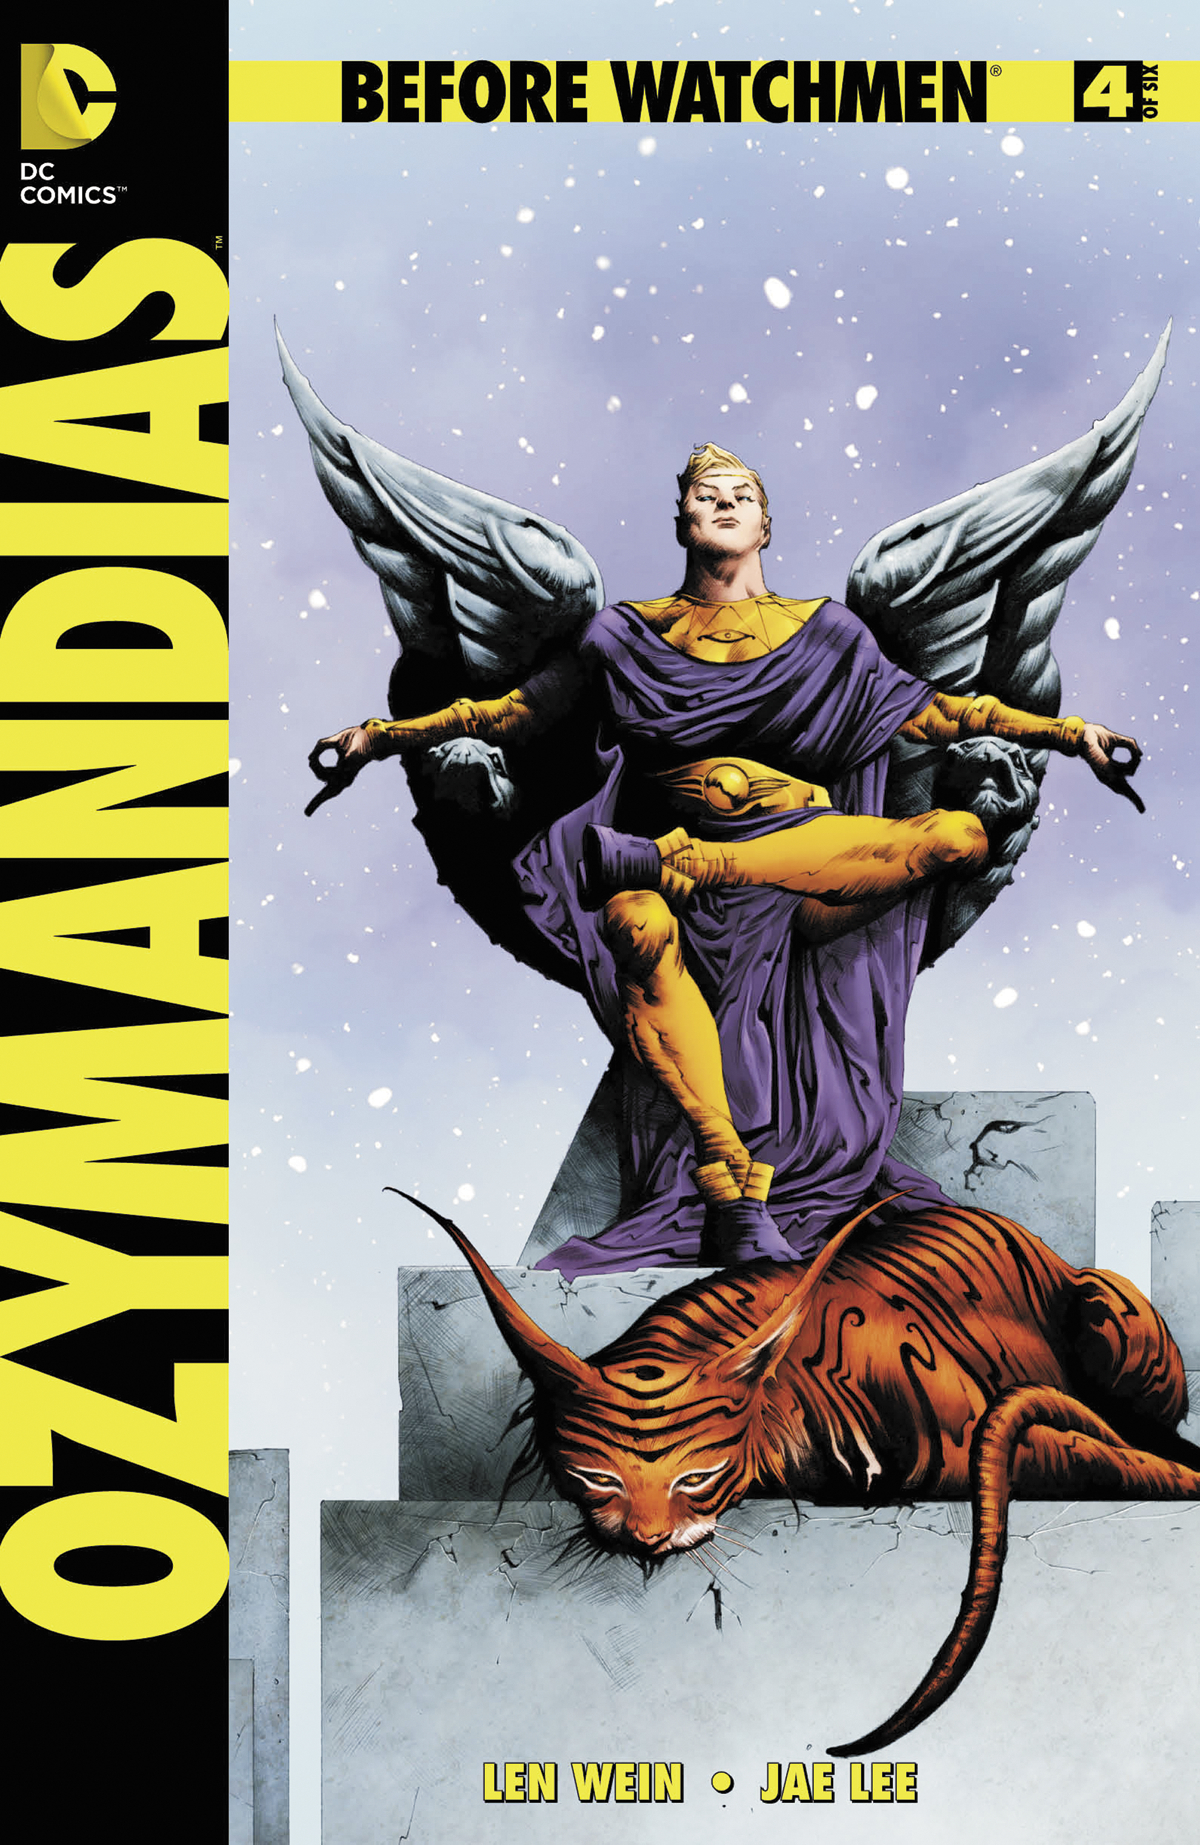 BEFORE WATCHMEN OZYMANDIAS #4 (OF 6) COMBO PACK